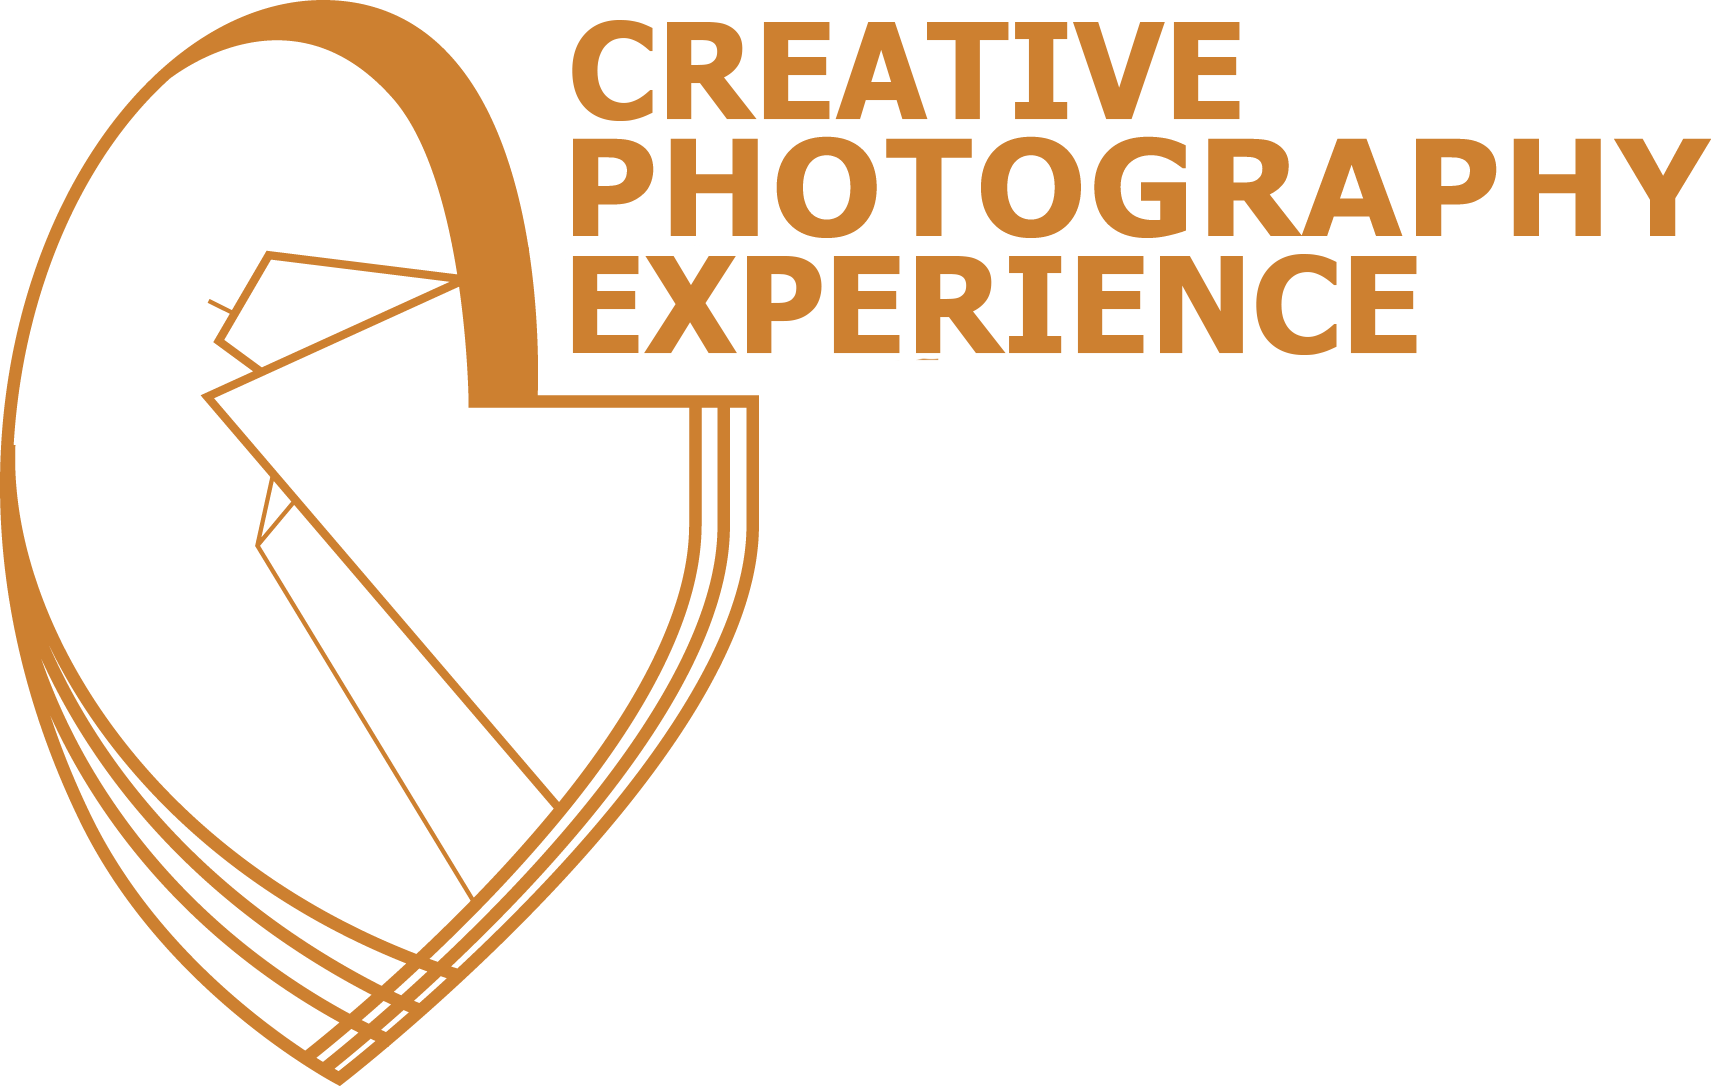 Creative Photography Experience